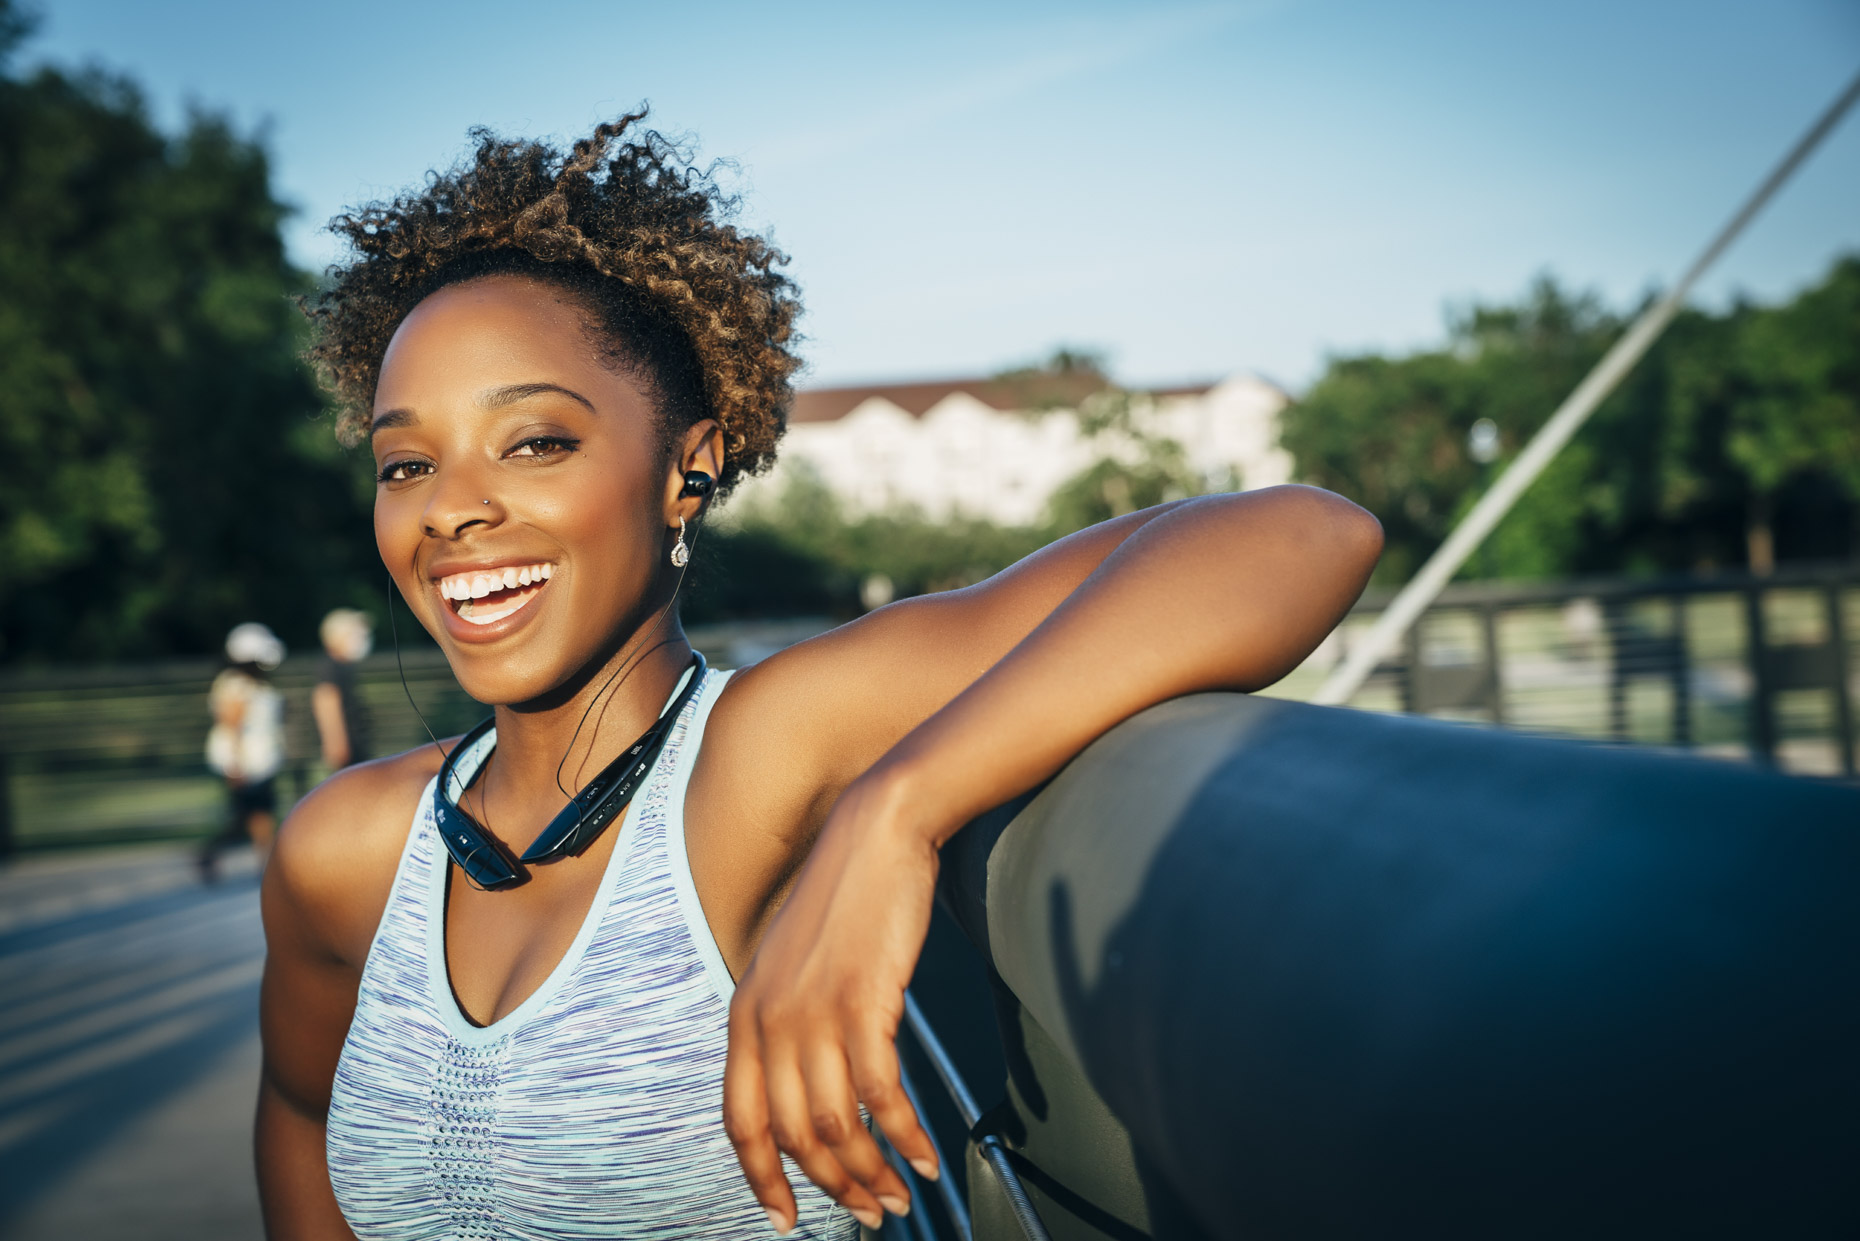 Smiling black woman in fitness attire and wireless headphones